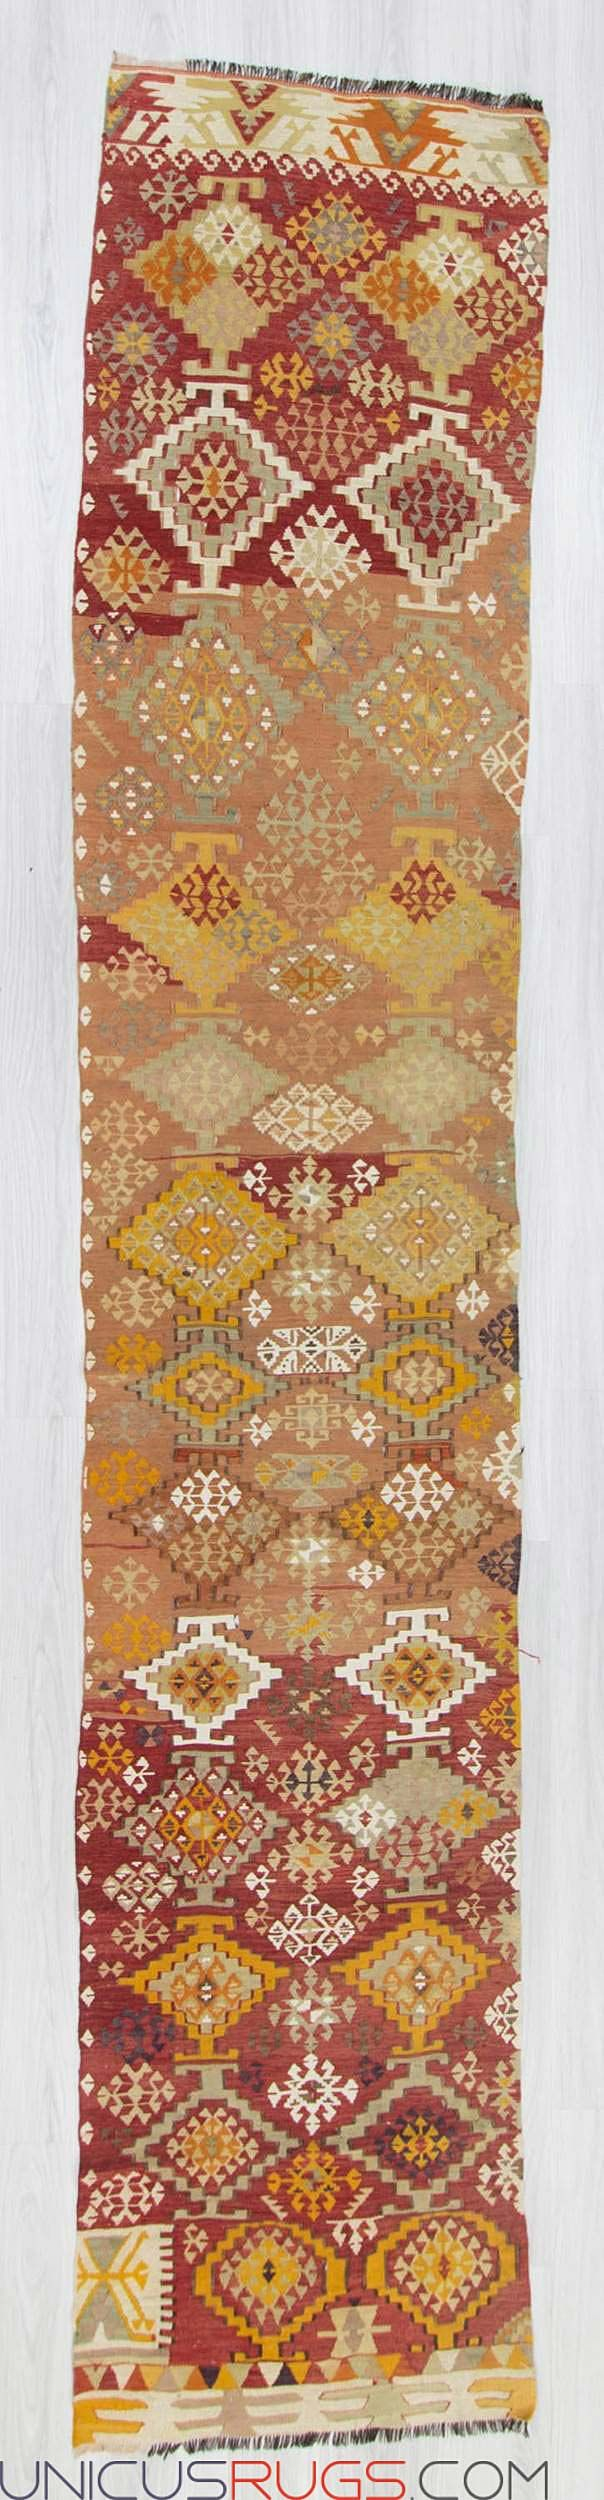 """Vintage kilim runner from Adana region of Turkey. In very good condition. Approximately 60-70 years old Width: 2' 6"""" - Length: 13' 0"""" RUNNERS"""